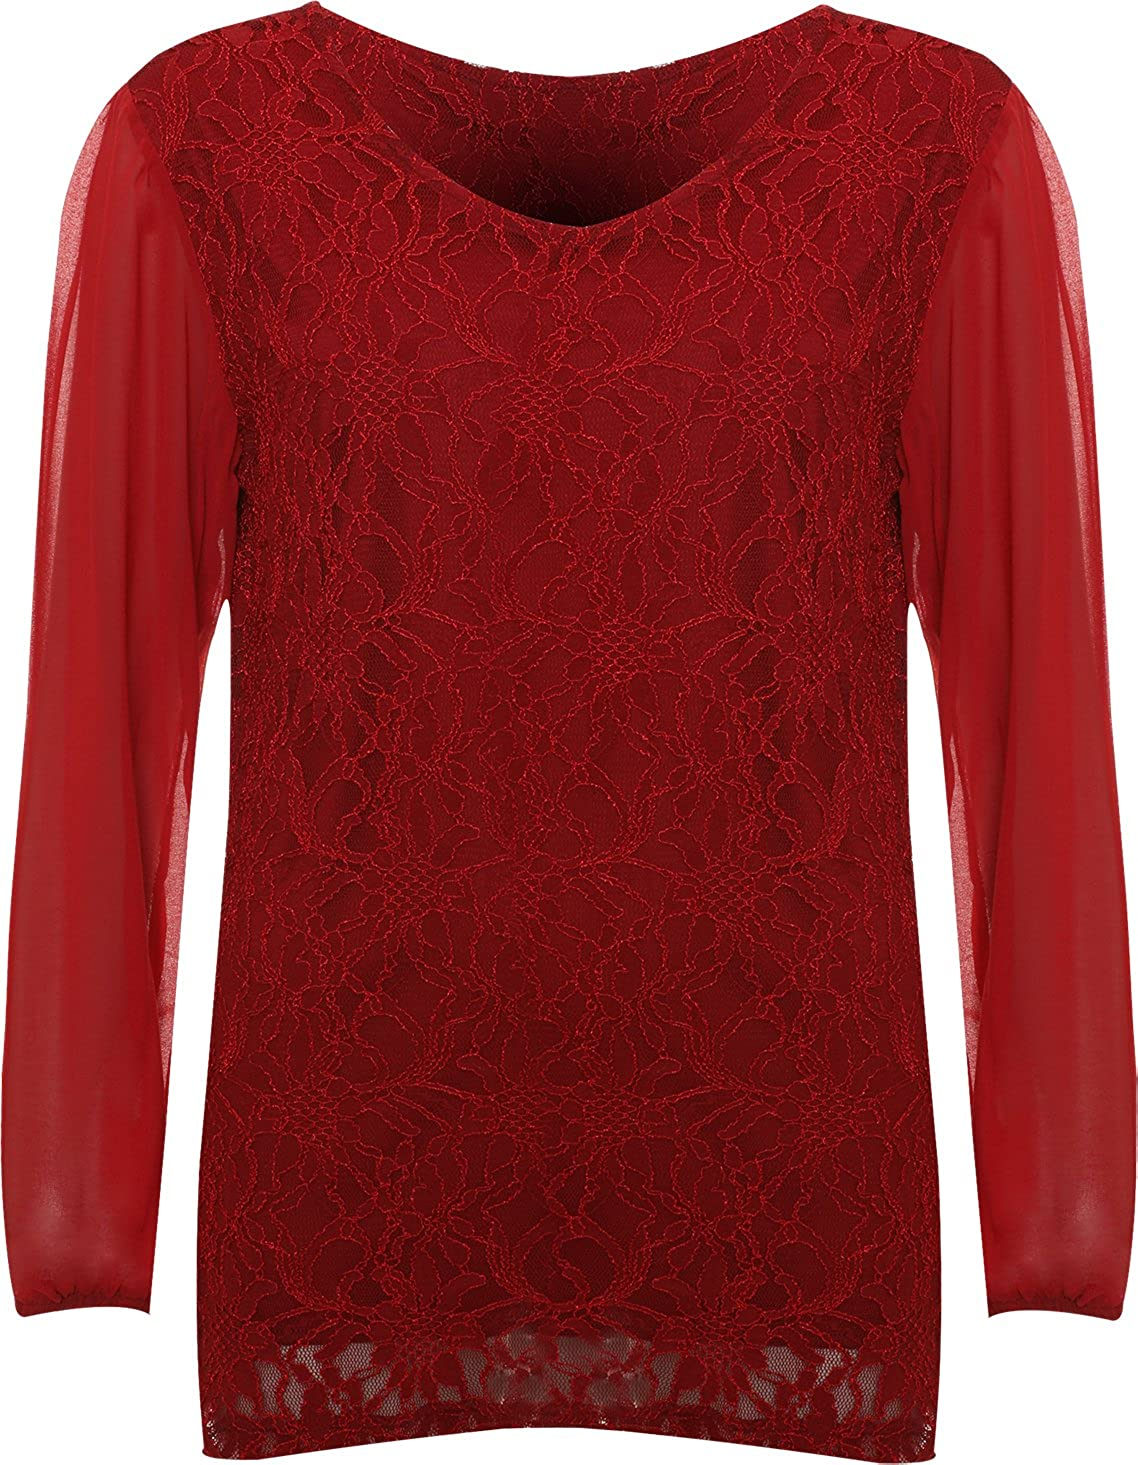 WearAll Womens Plus Size Lace Lined Sheer Long Sleeve Ladies Chiffon Tunic Party Top - Sizes 14-28 39604